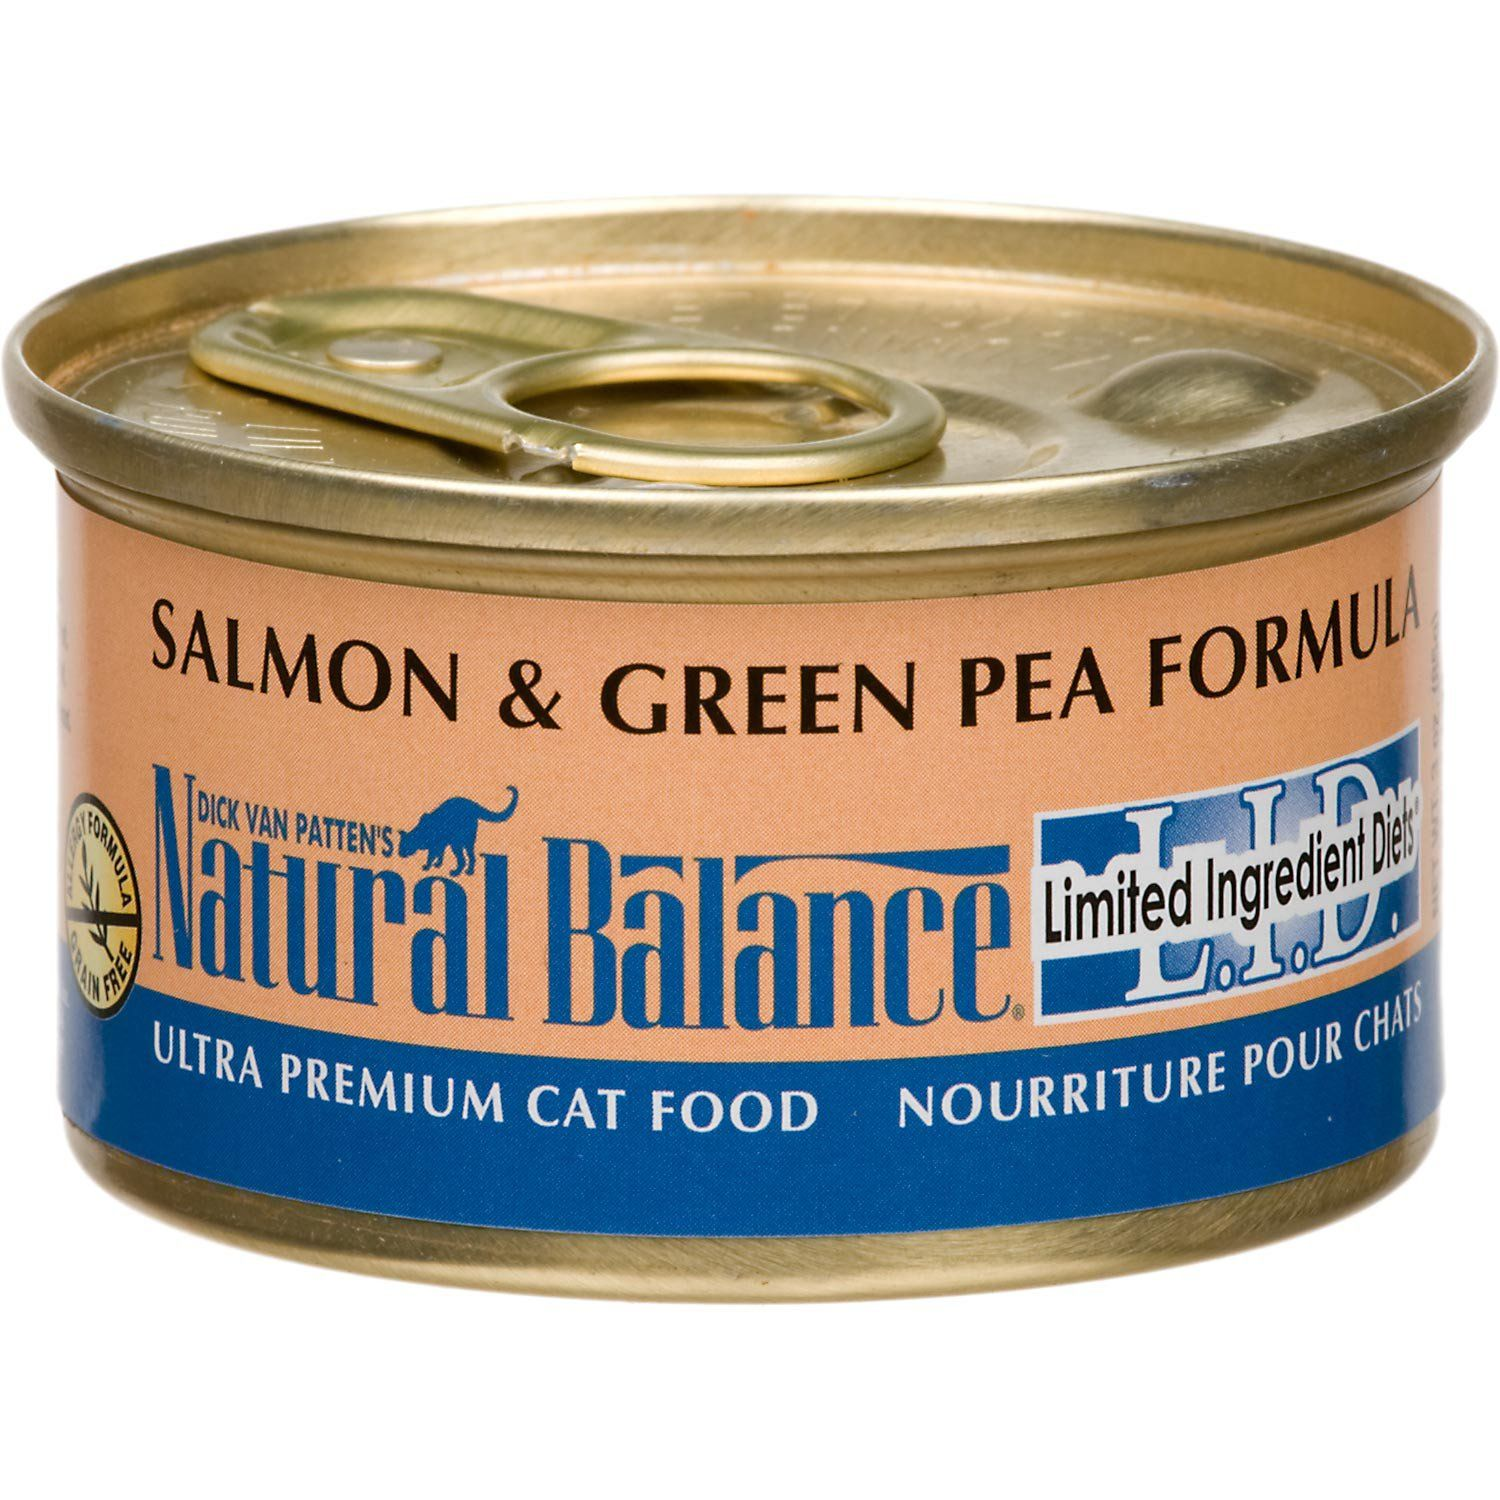 Natural Balance L.I.D. Limited Ingredient Diets Salmon